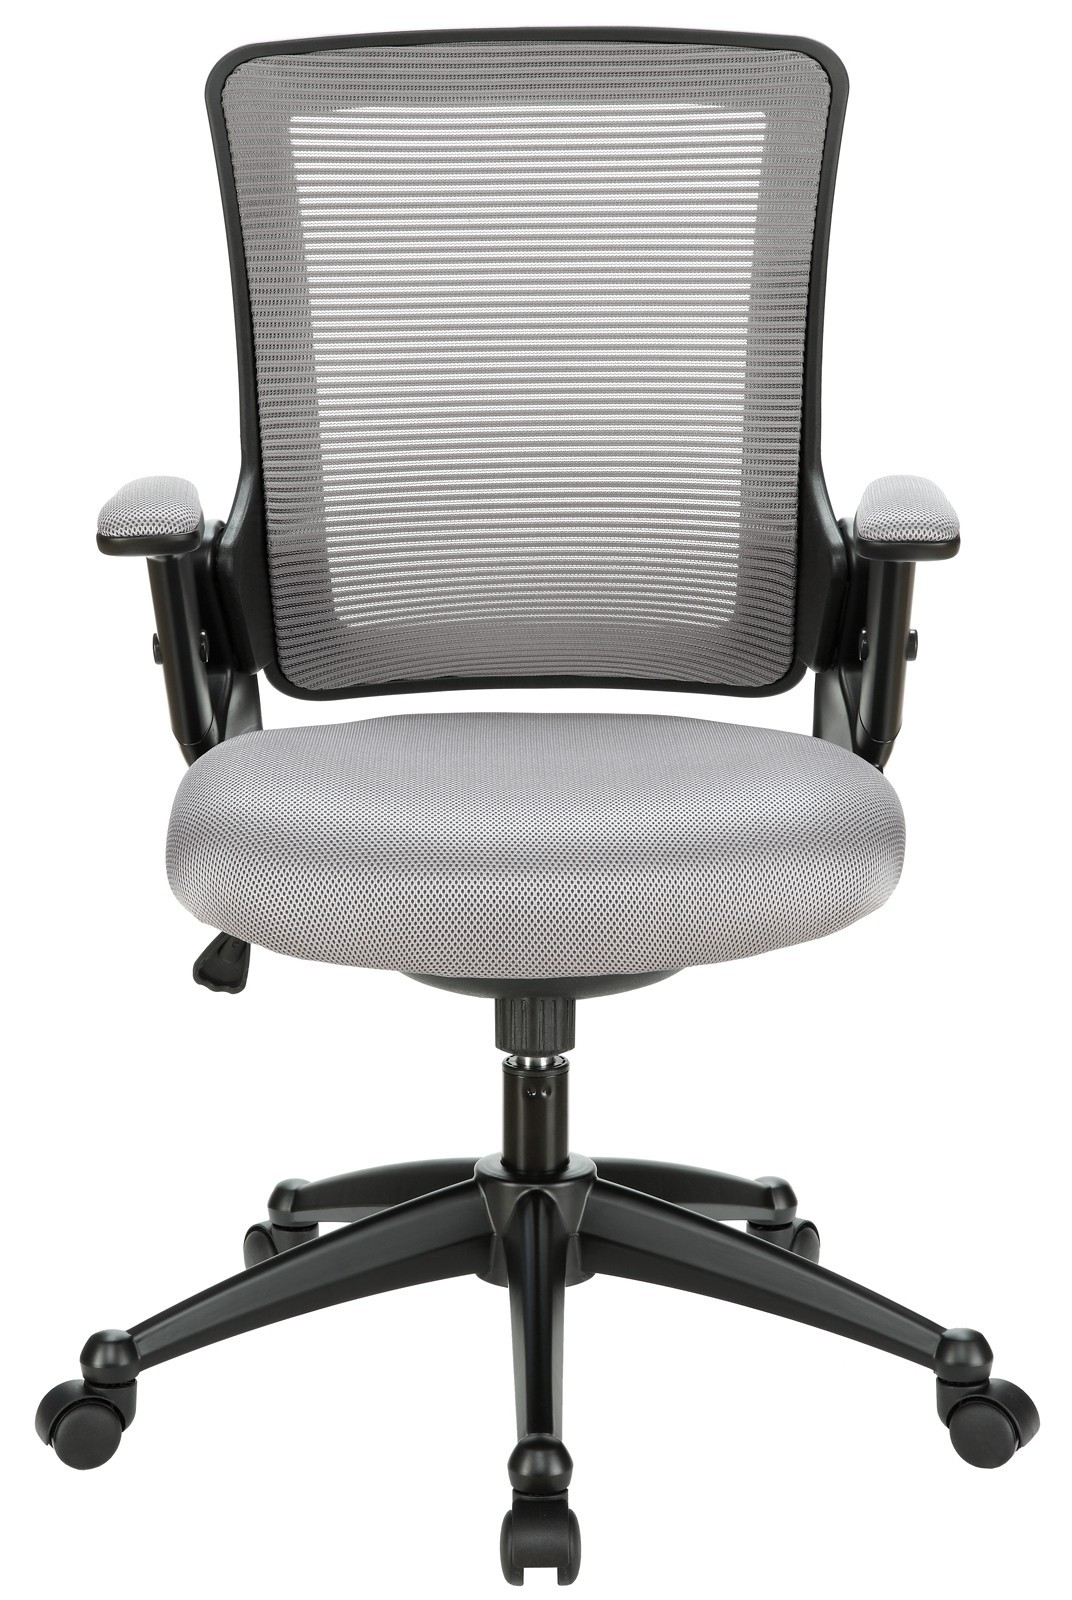 padded office chair legs for sale view with mesh back and gray seat from